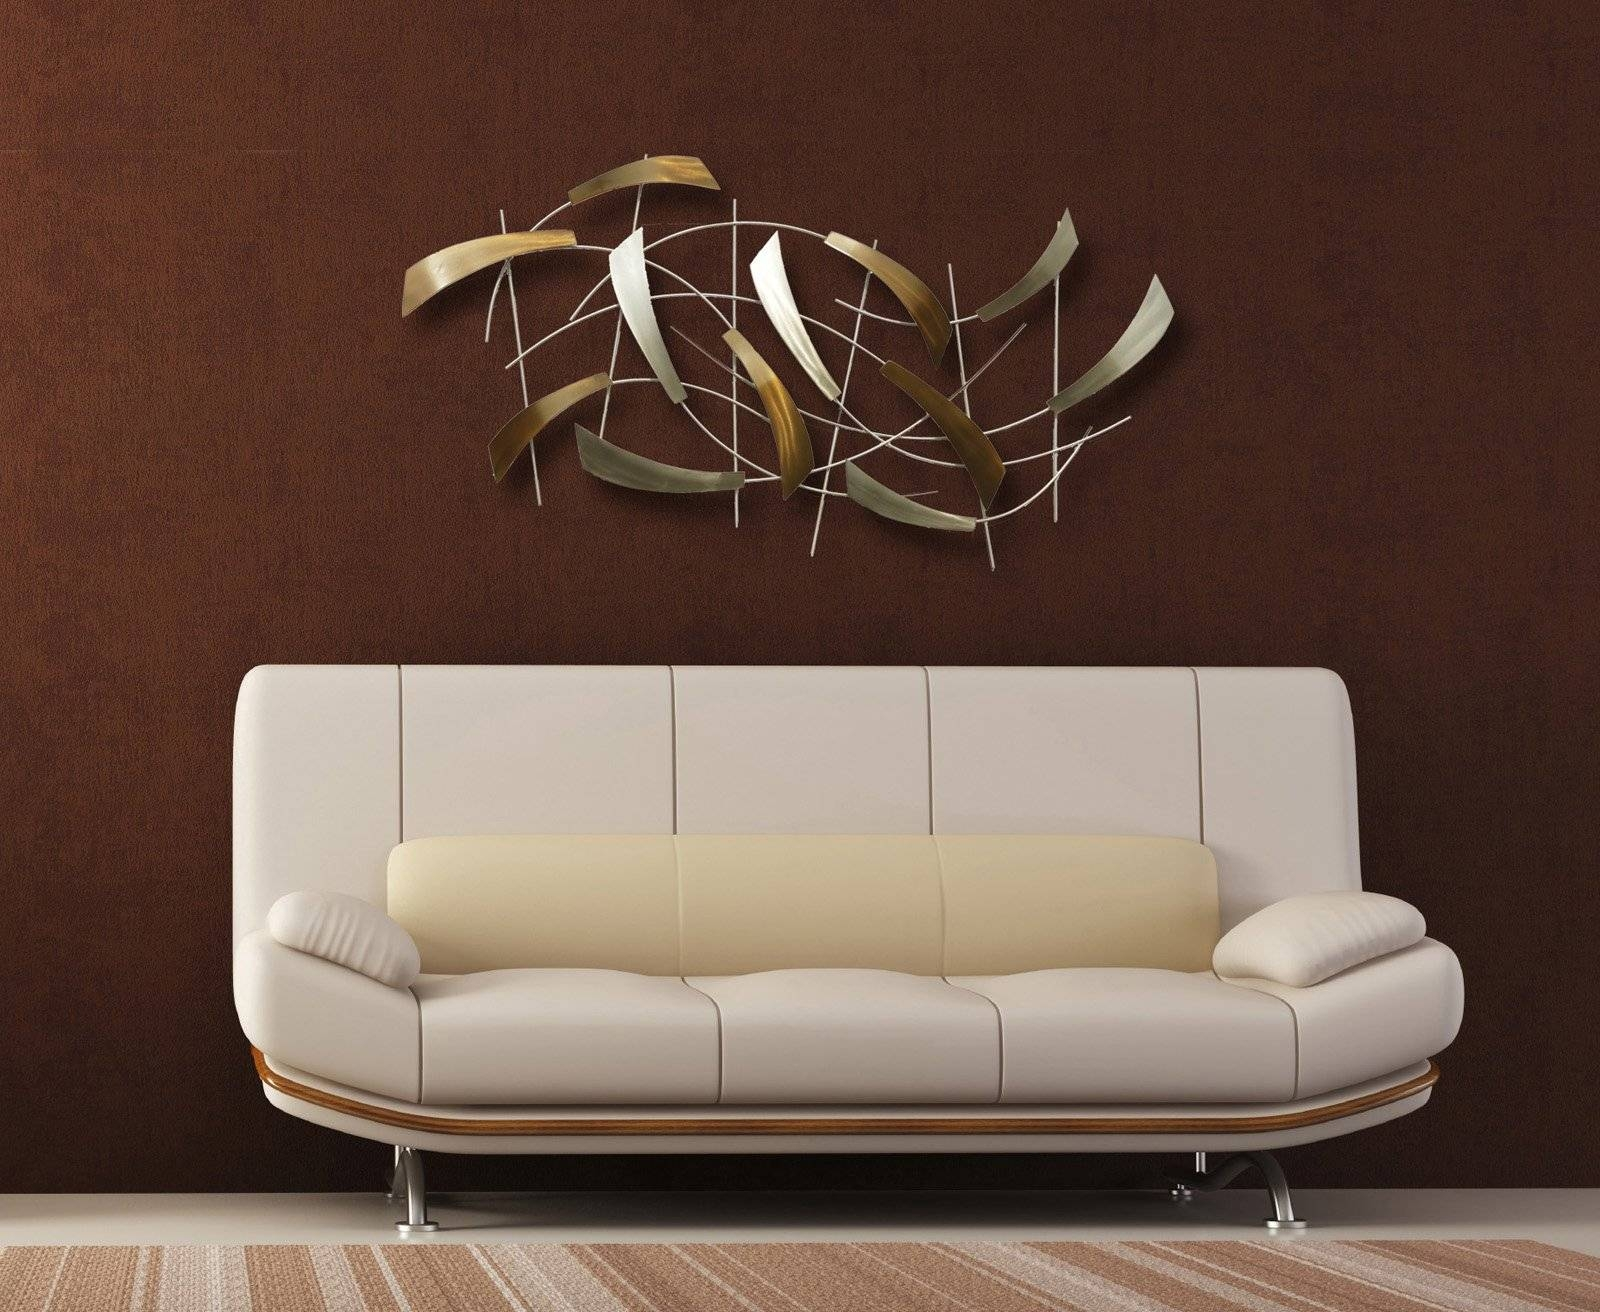 Nova Lighting 12652 Tidal Contemporary Wall Art / Wall Decor Nv-12652 for Most Recently Released Nova Wall Art